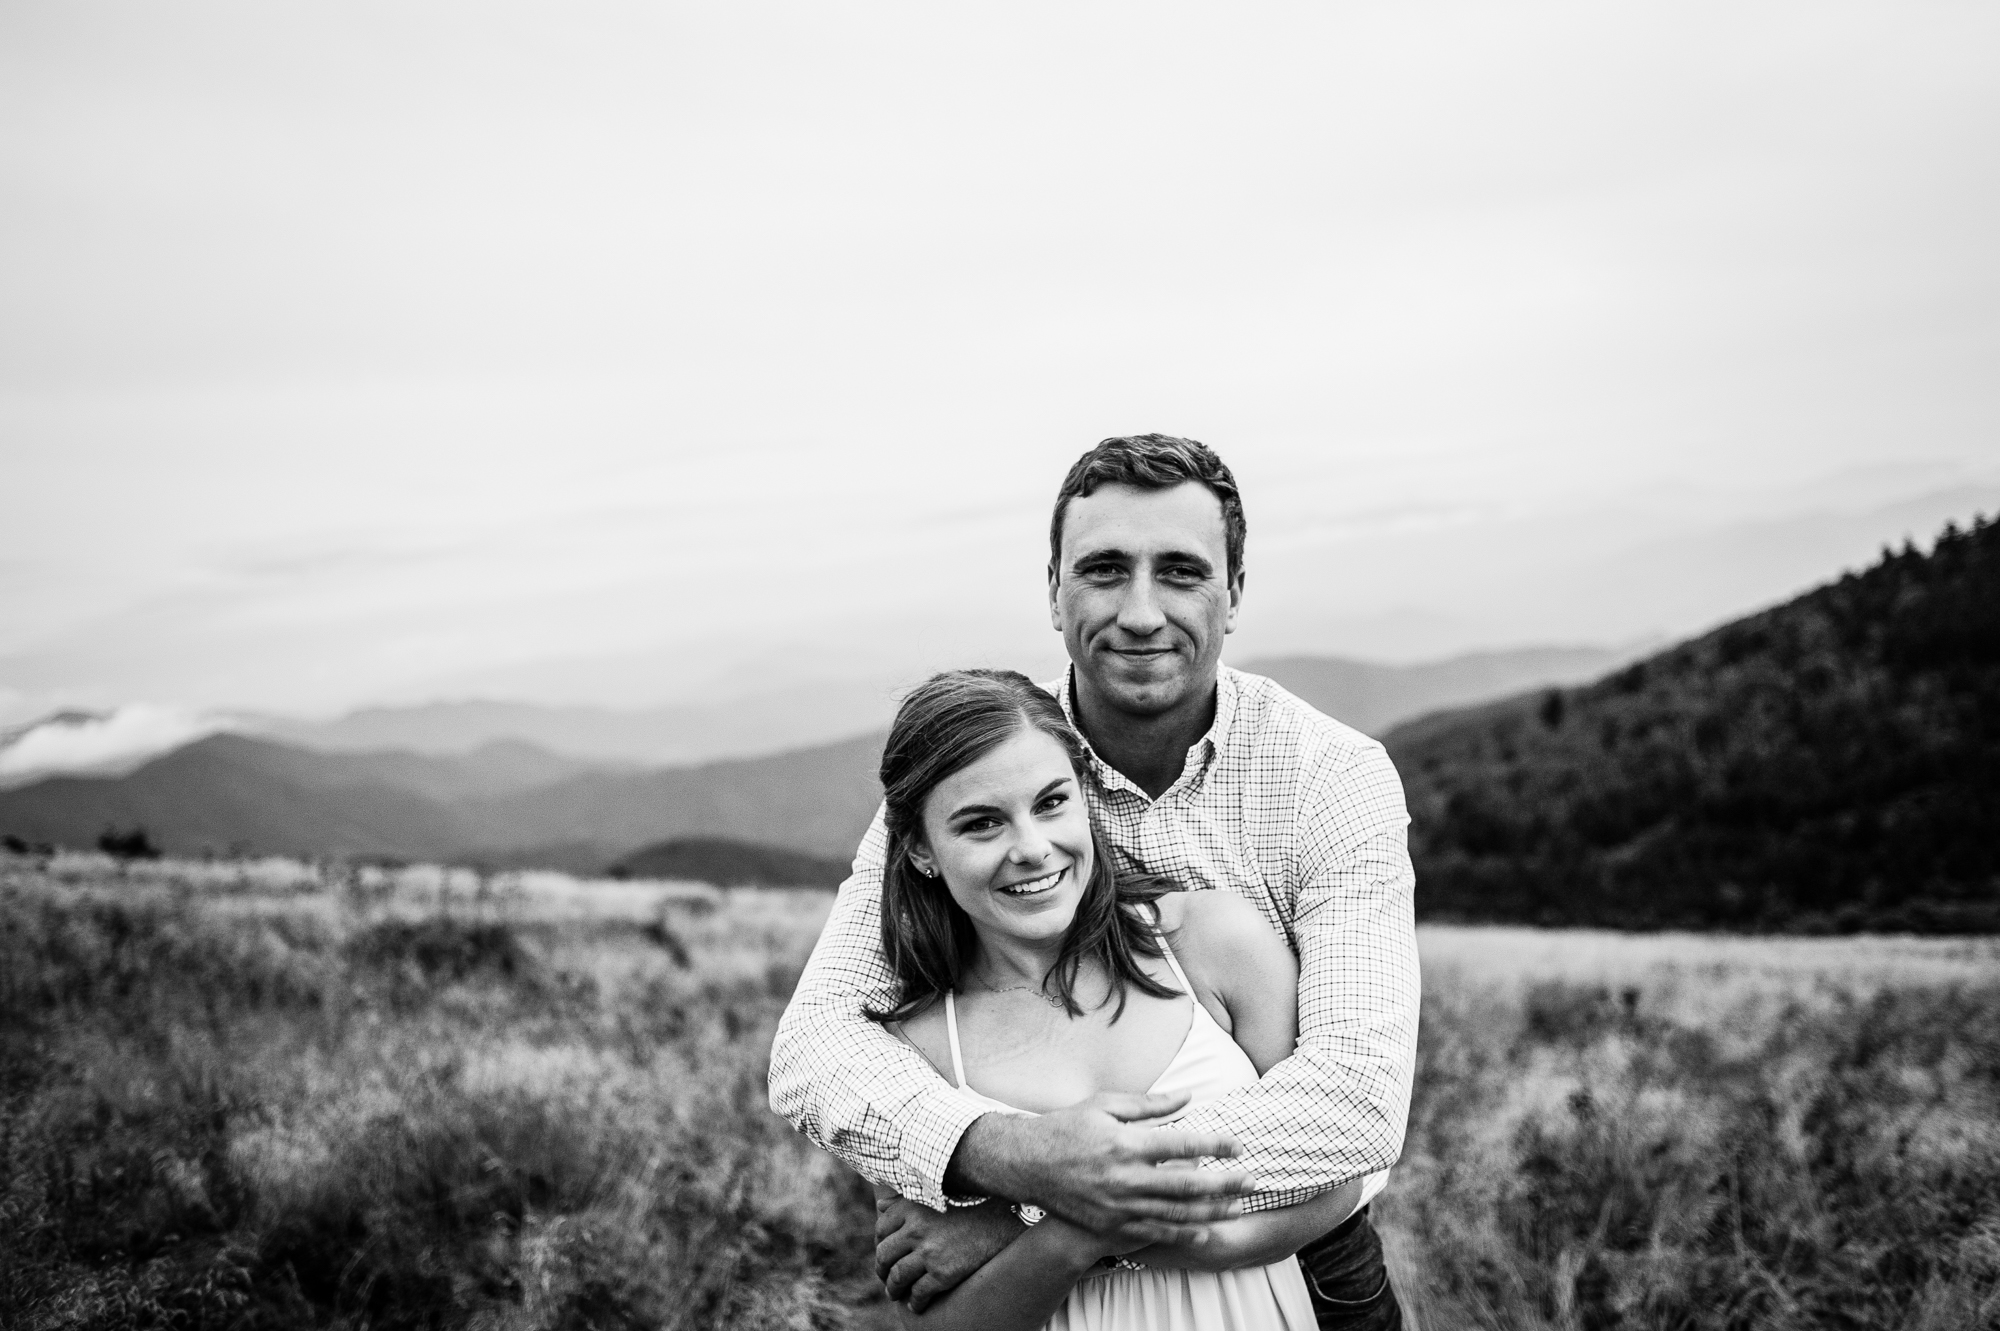 adorable couple poses for a photo during their engagement session in the mountains